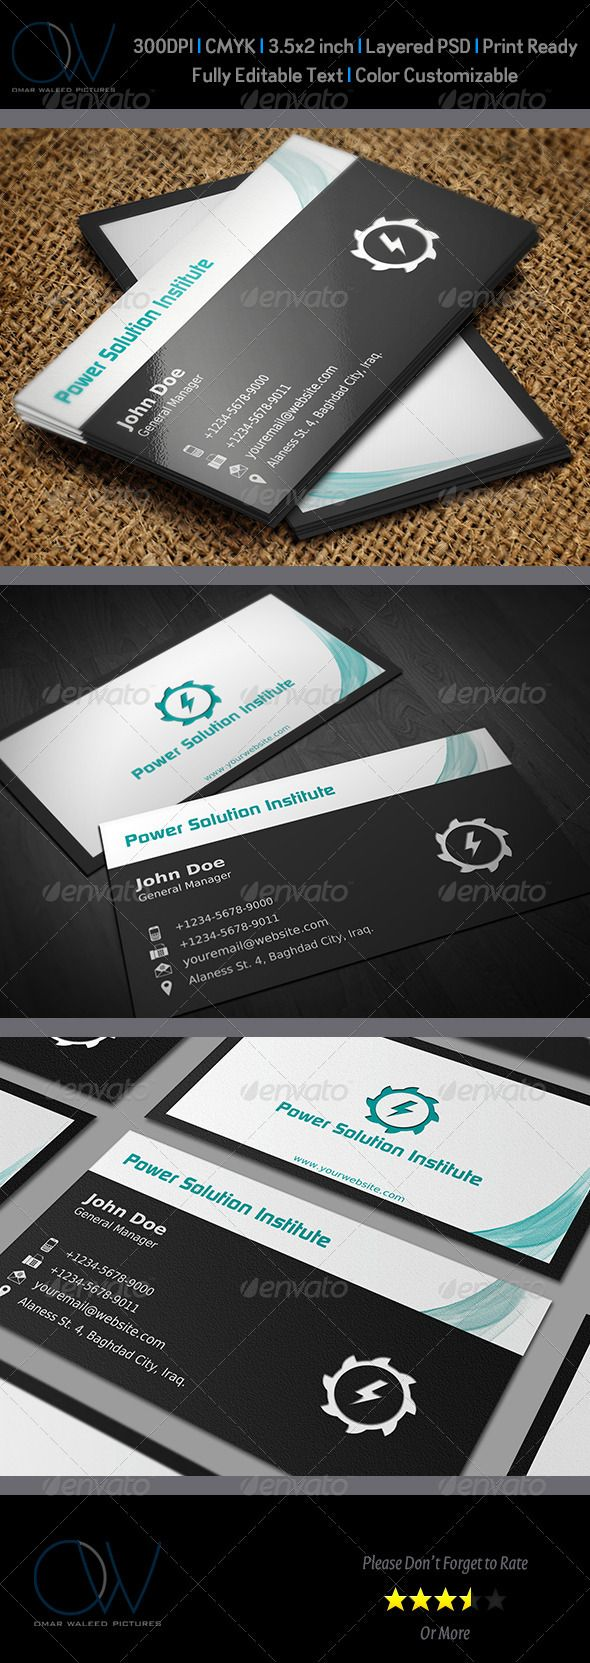 Classic Business Card Vol 2 Classic Business Card Cards Business Cards